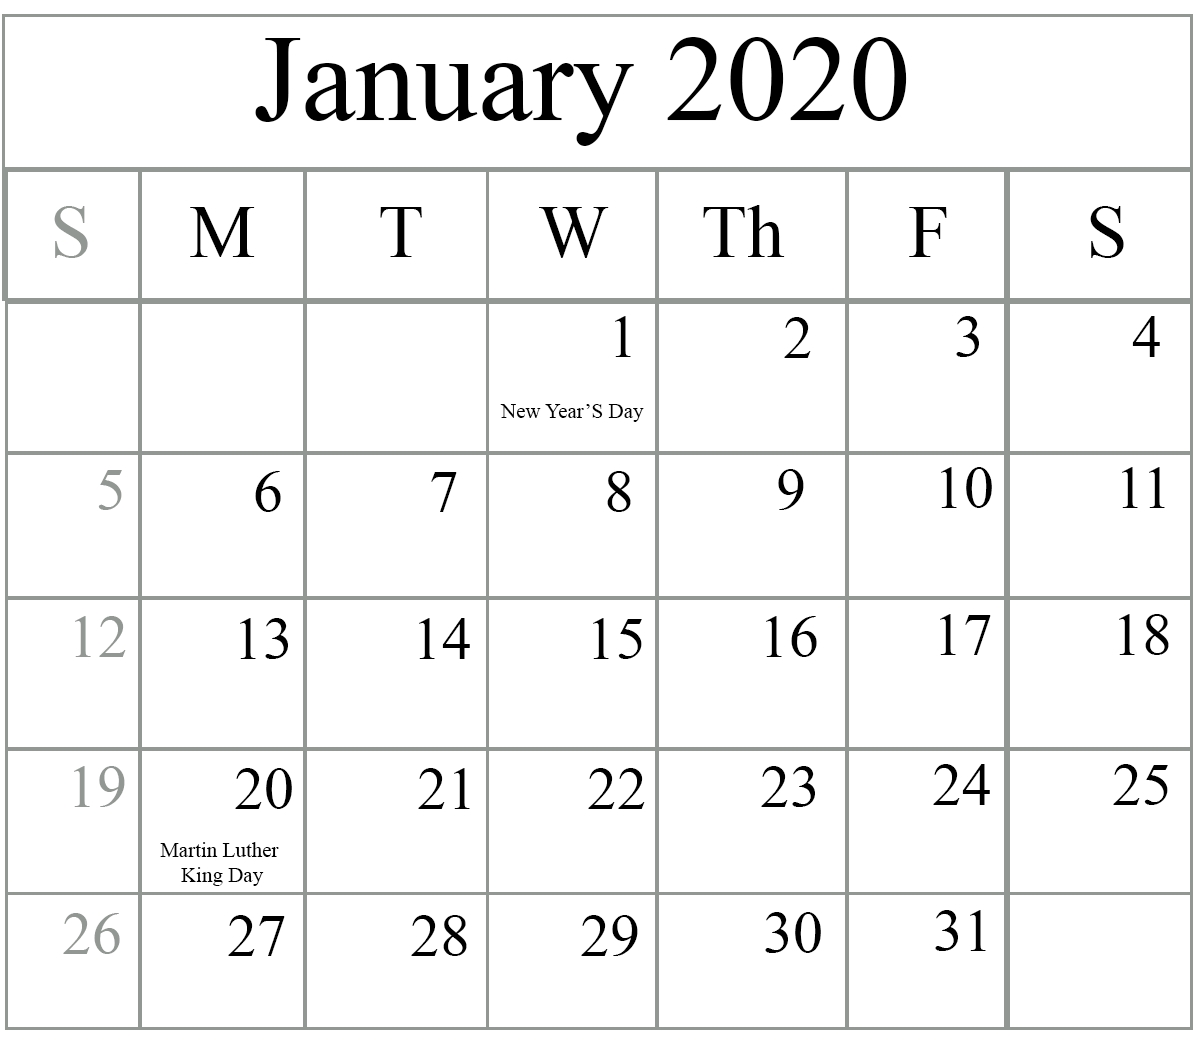 Free January 2020 Printable Calendar In Pdf, Excel & Word-January 2020 Calendar Template Word